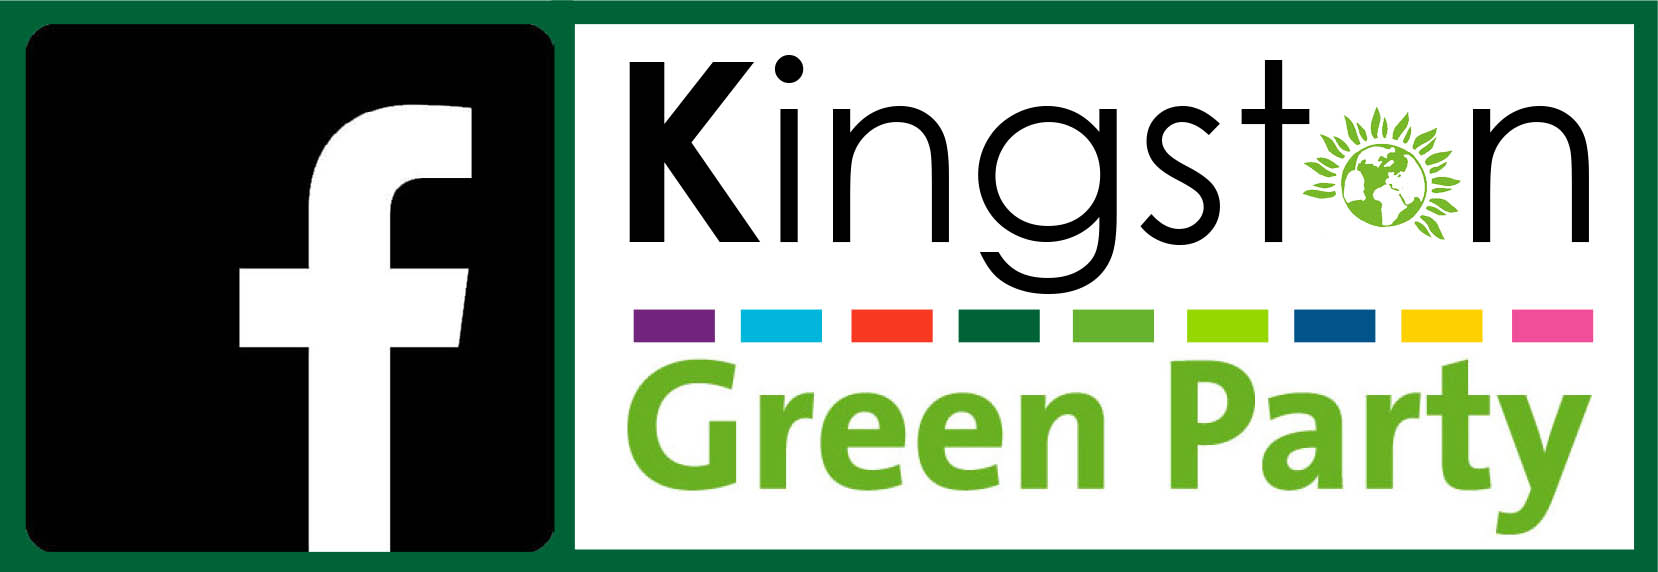 kingston green party facebook